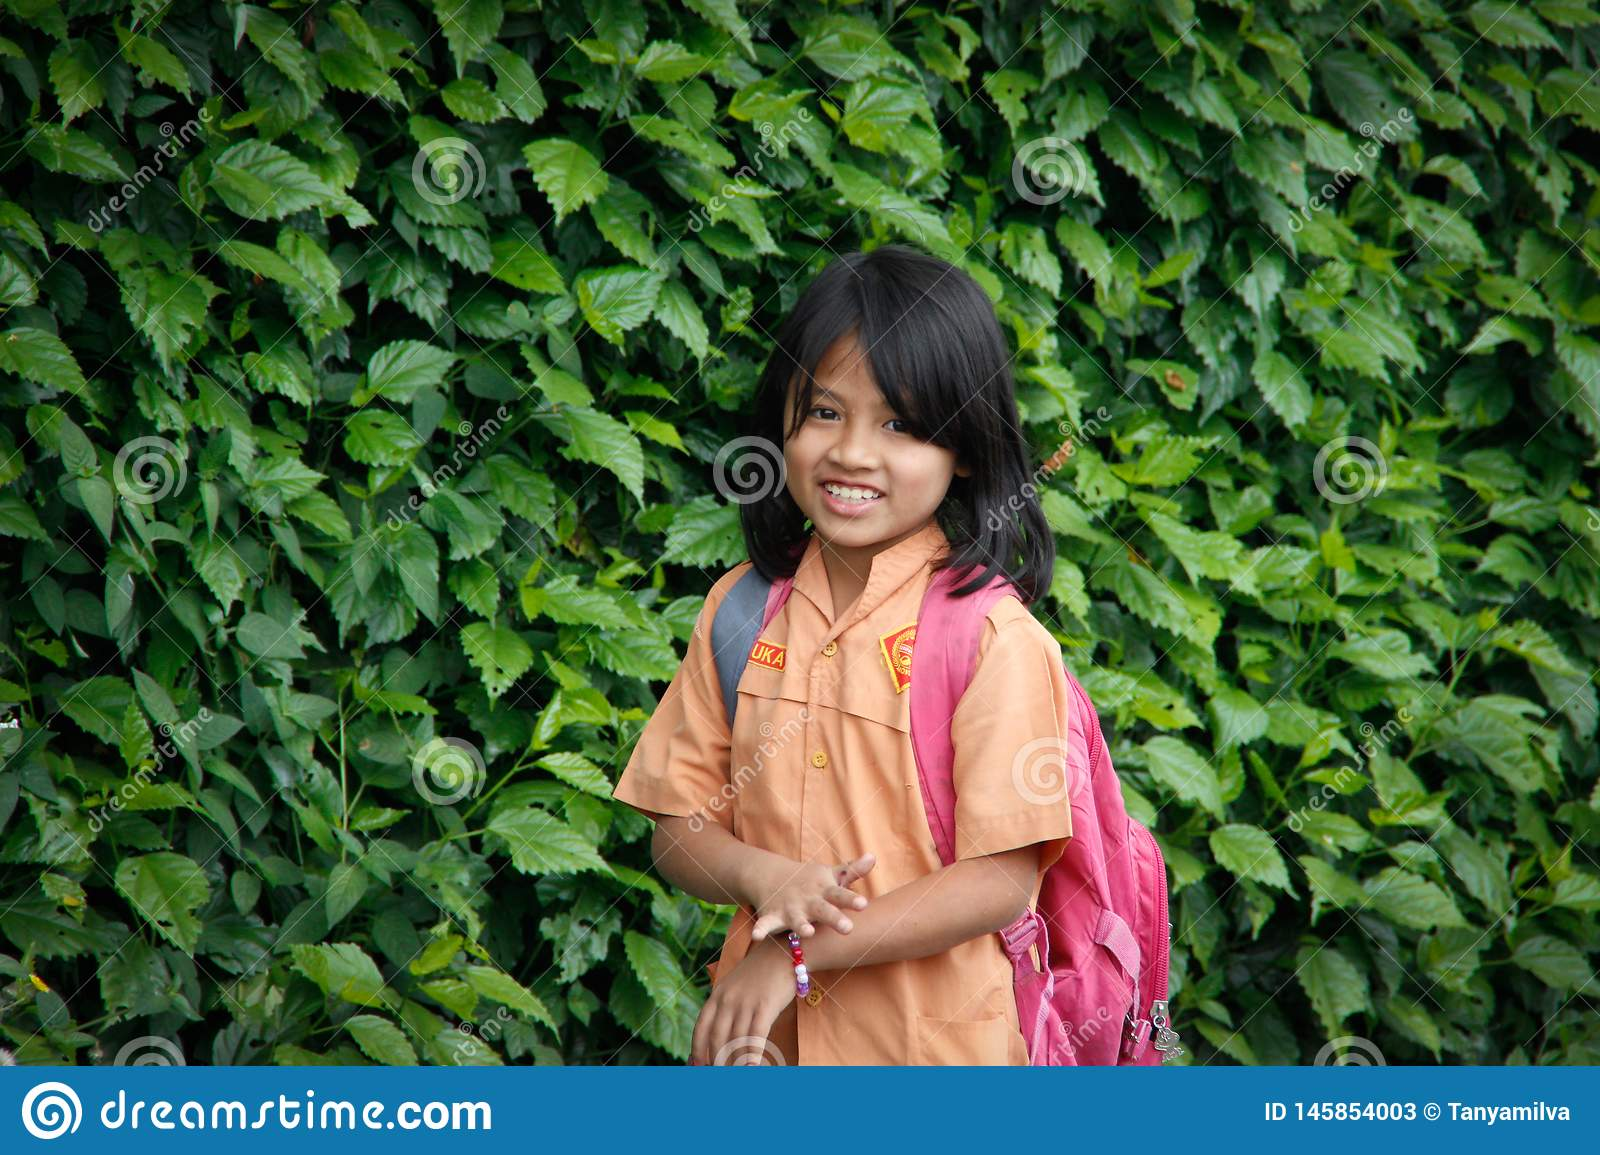 Little Indonesian schoolgirl walks with a school bag against a background of a wall with plants